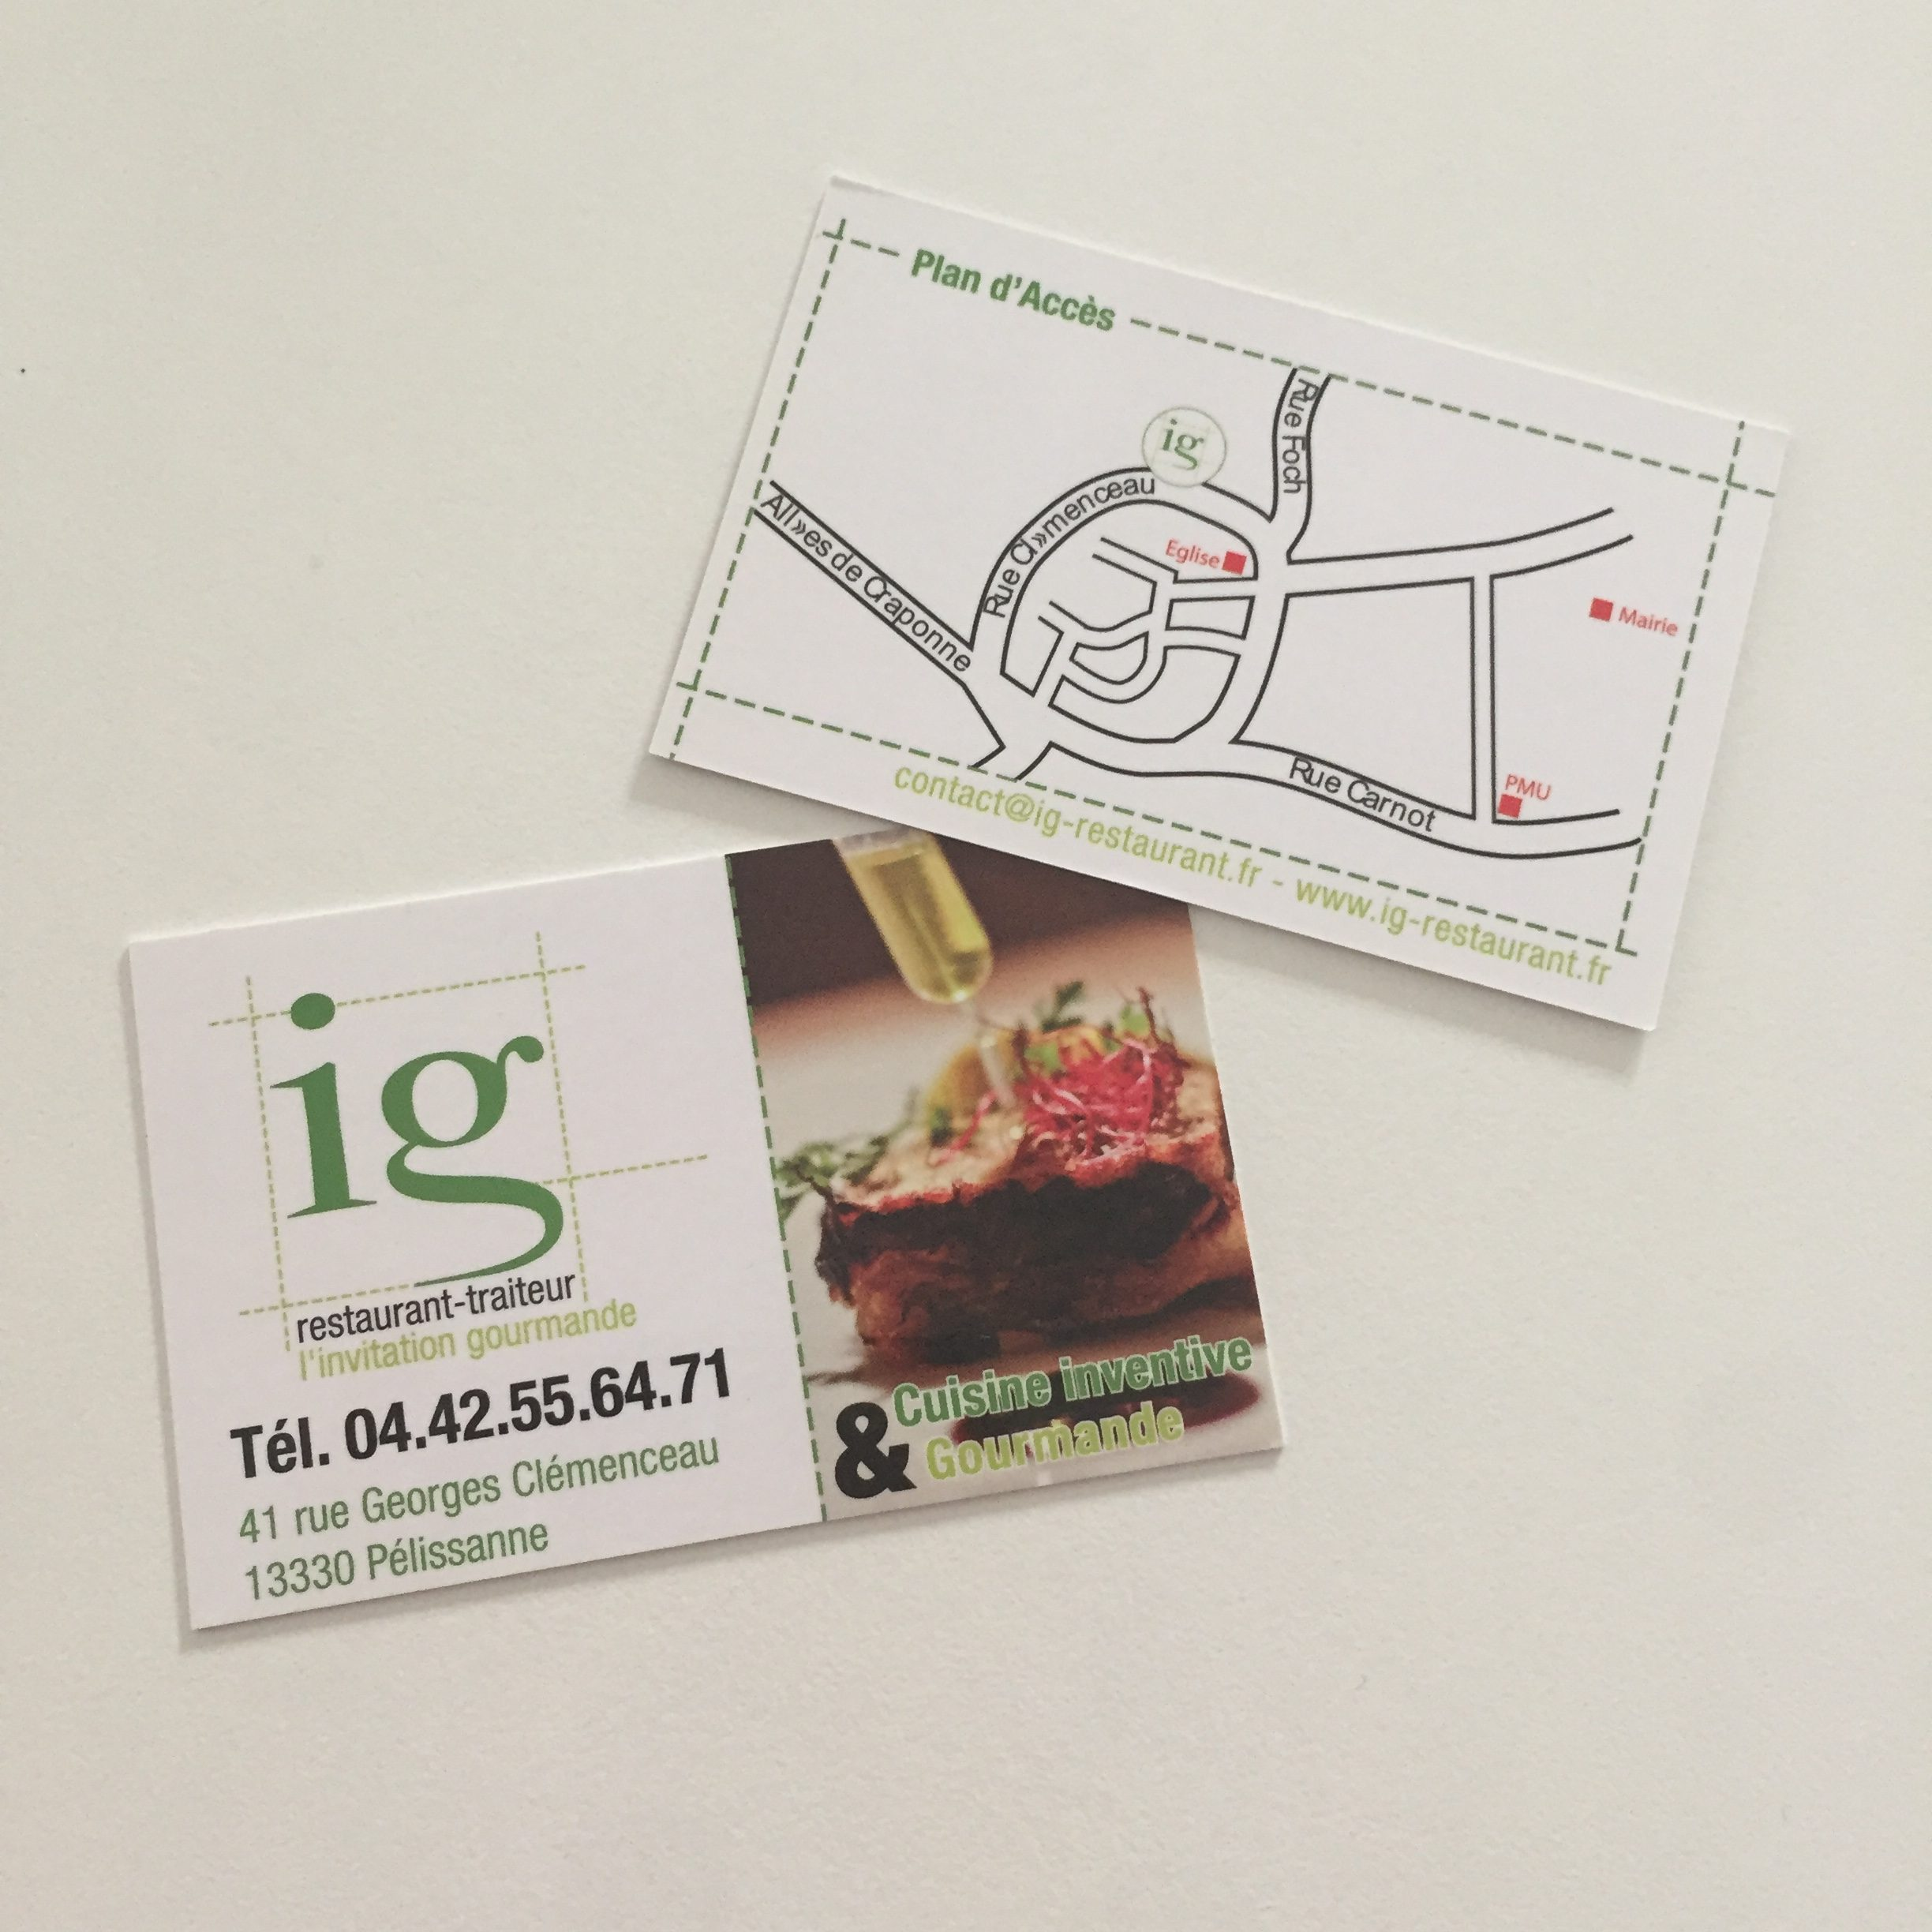 Cartes de visites pour L'Invitation Gourmande - Restaurant